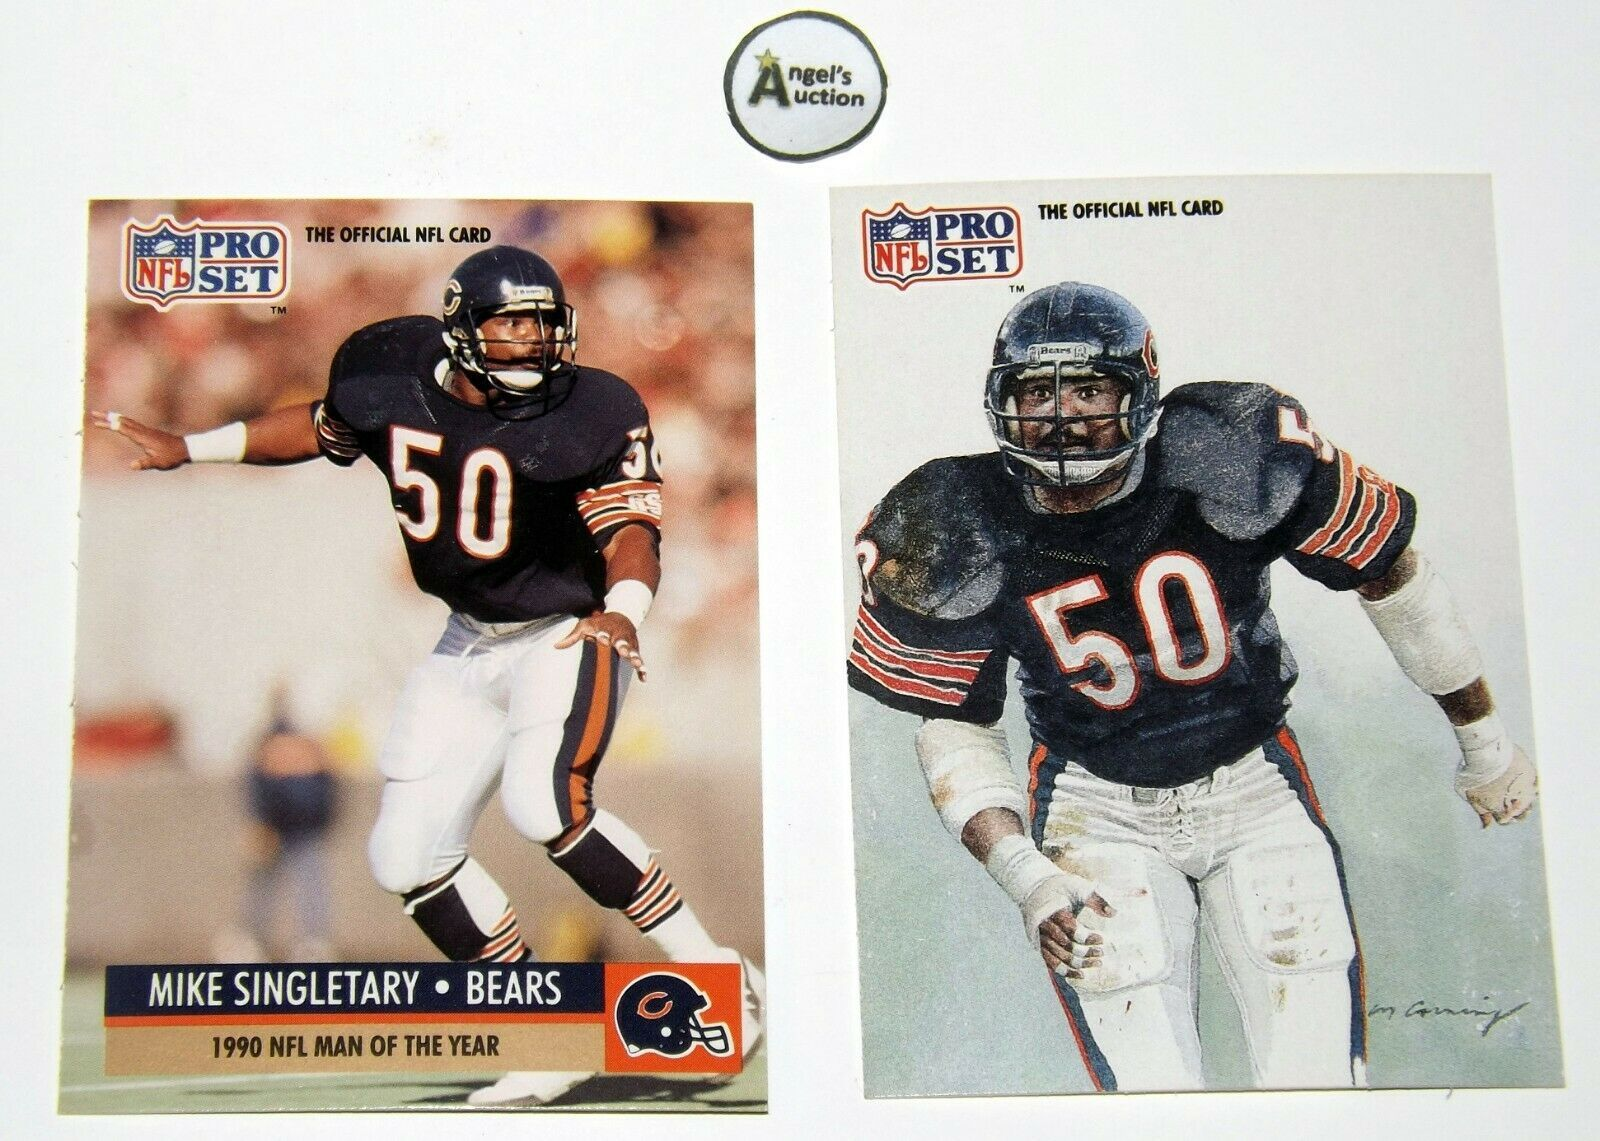 Mike Singletary #50 RB Chicago Bears Football Trading Cards AA-191699 Vintage C